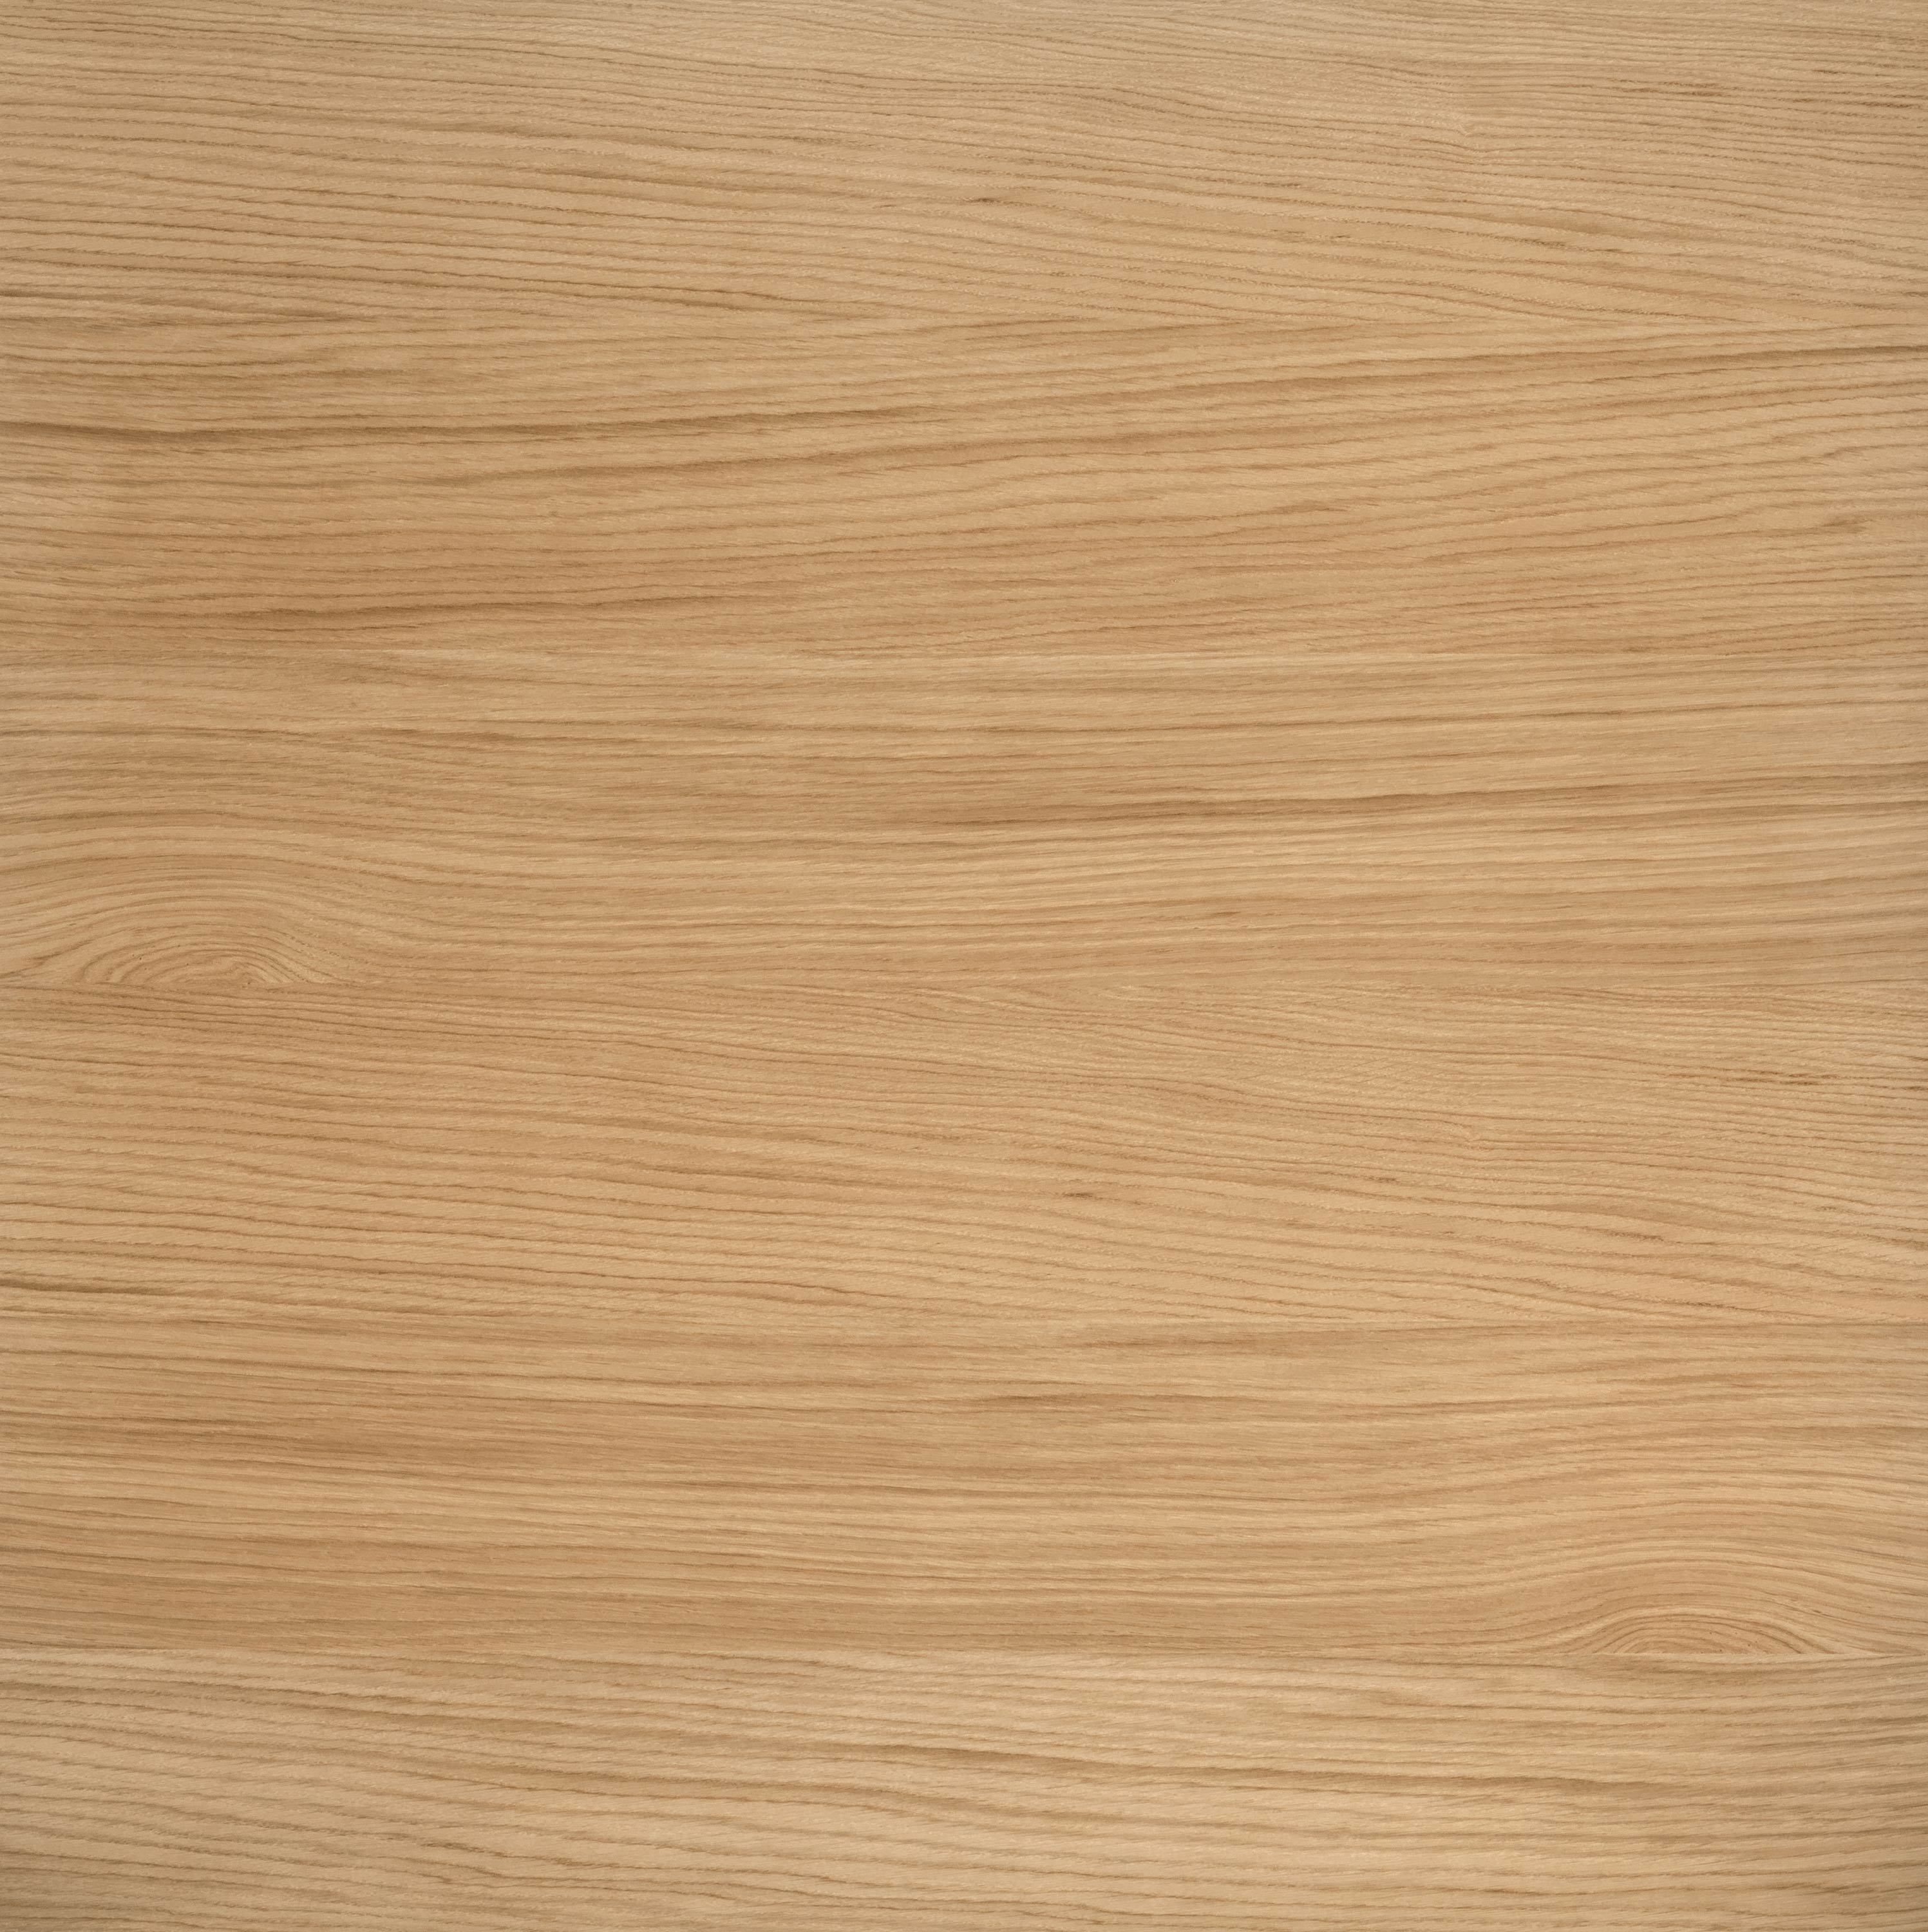 RN ROVERE NATURALE